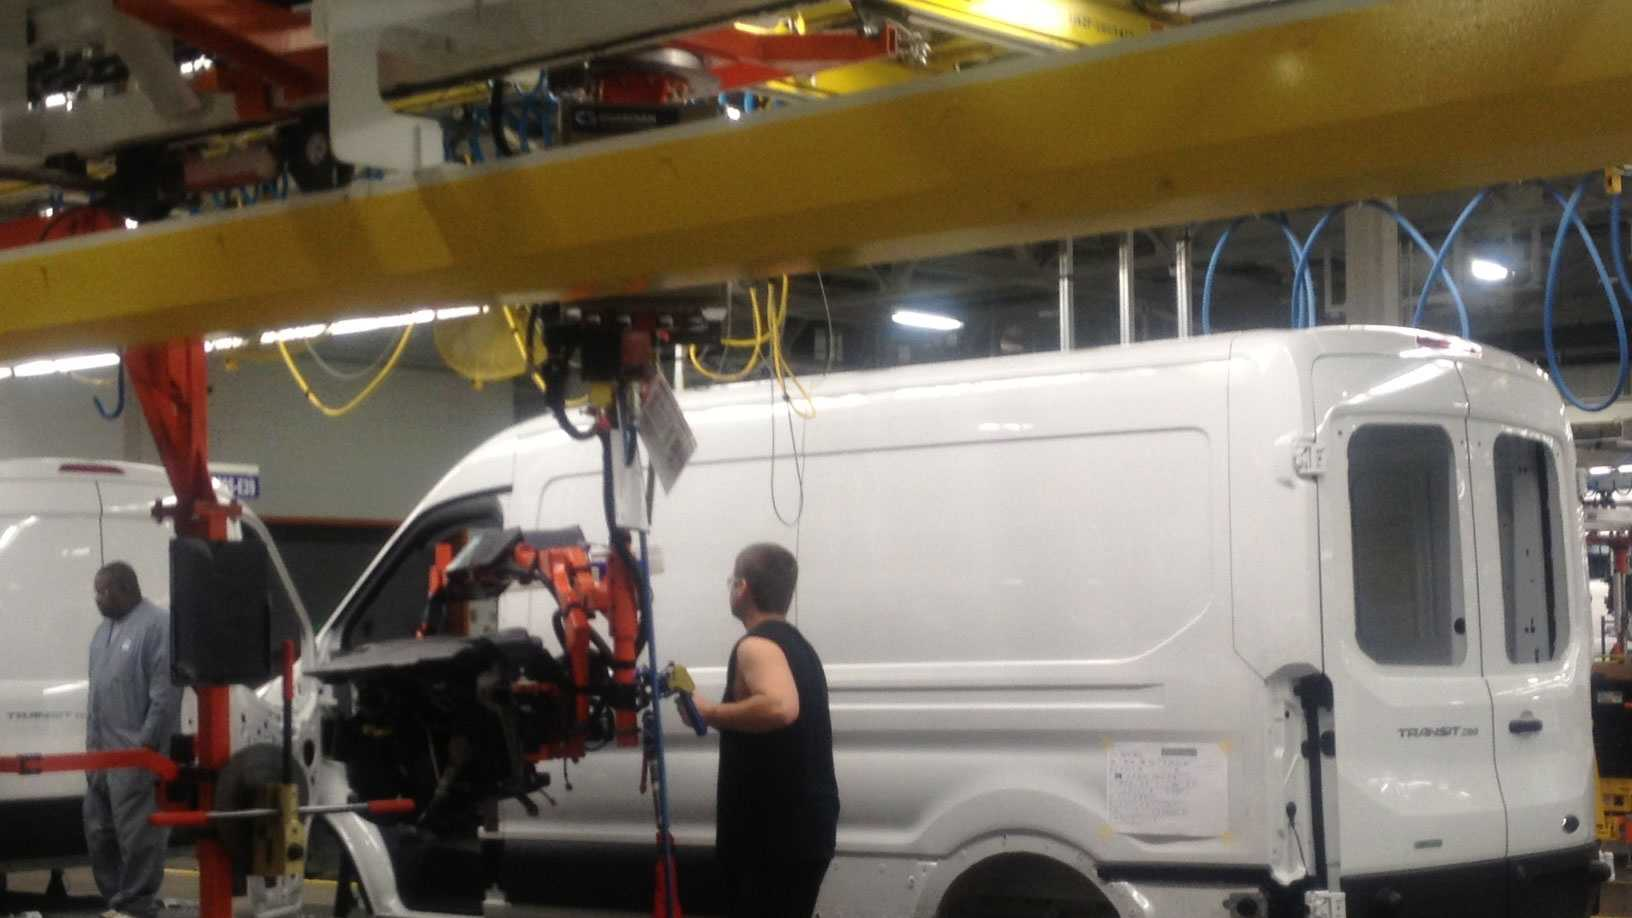 Ford Transit on the production line